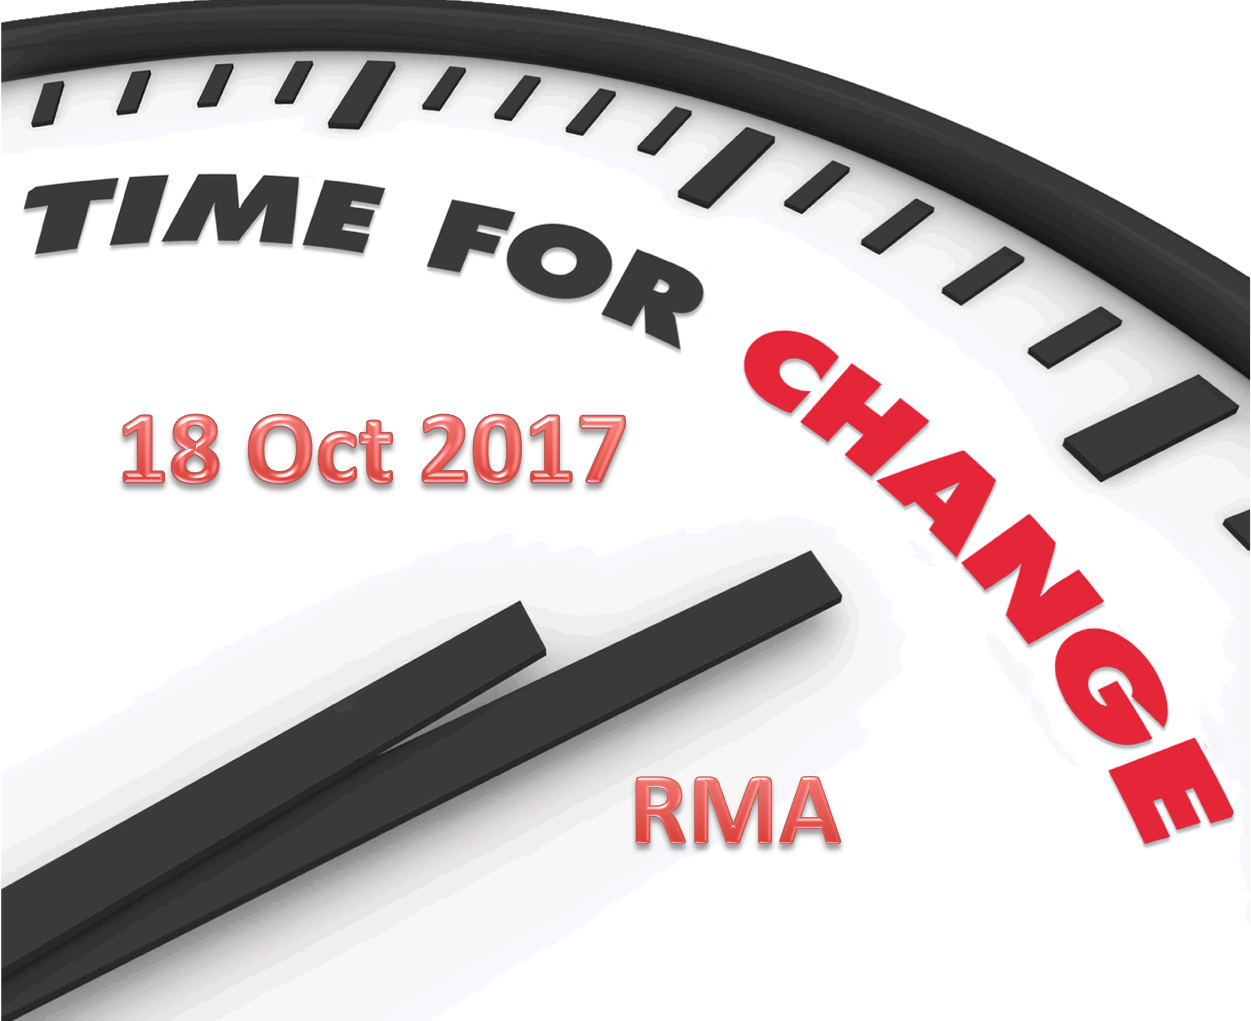 RMA Changes 18 Oct 2017